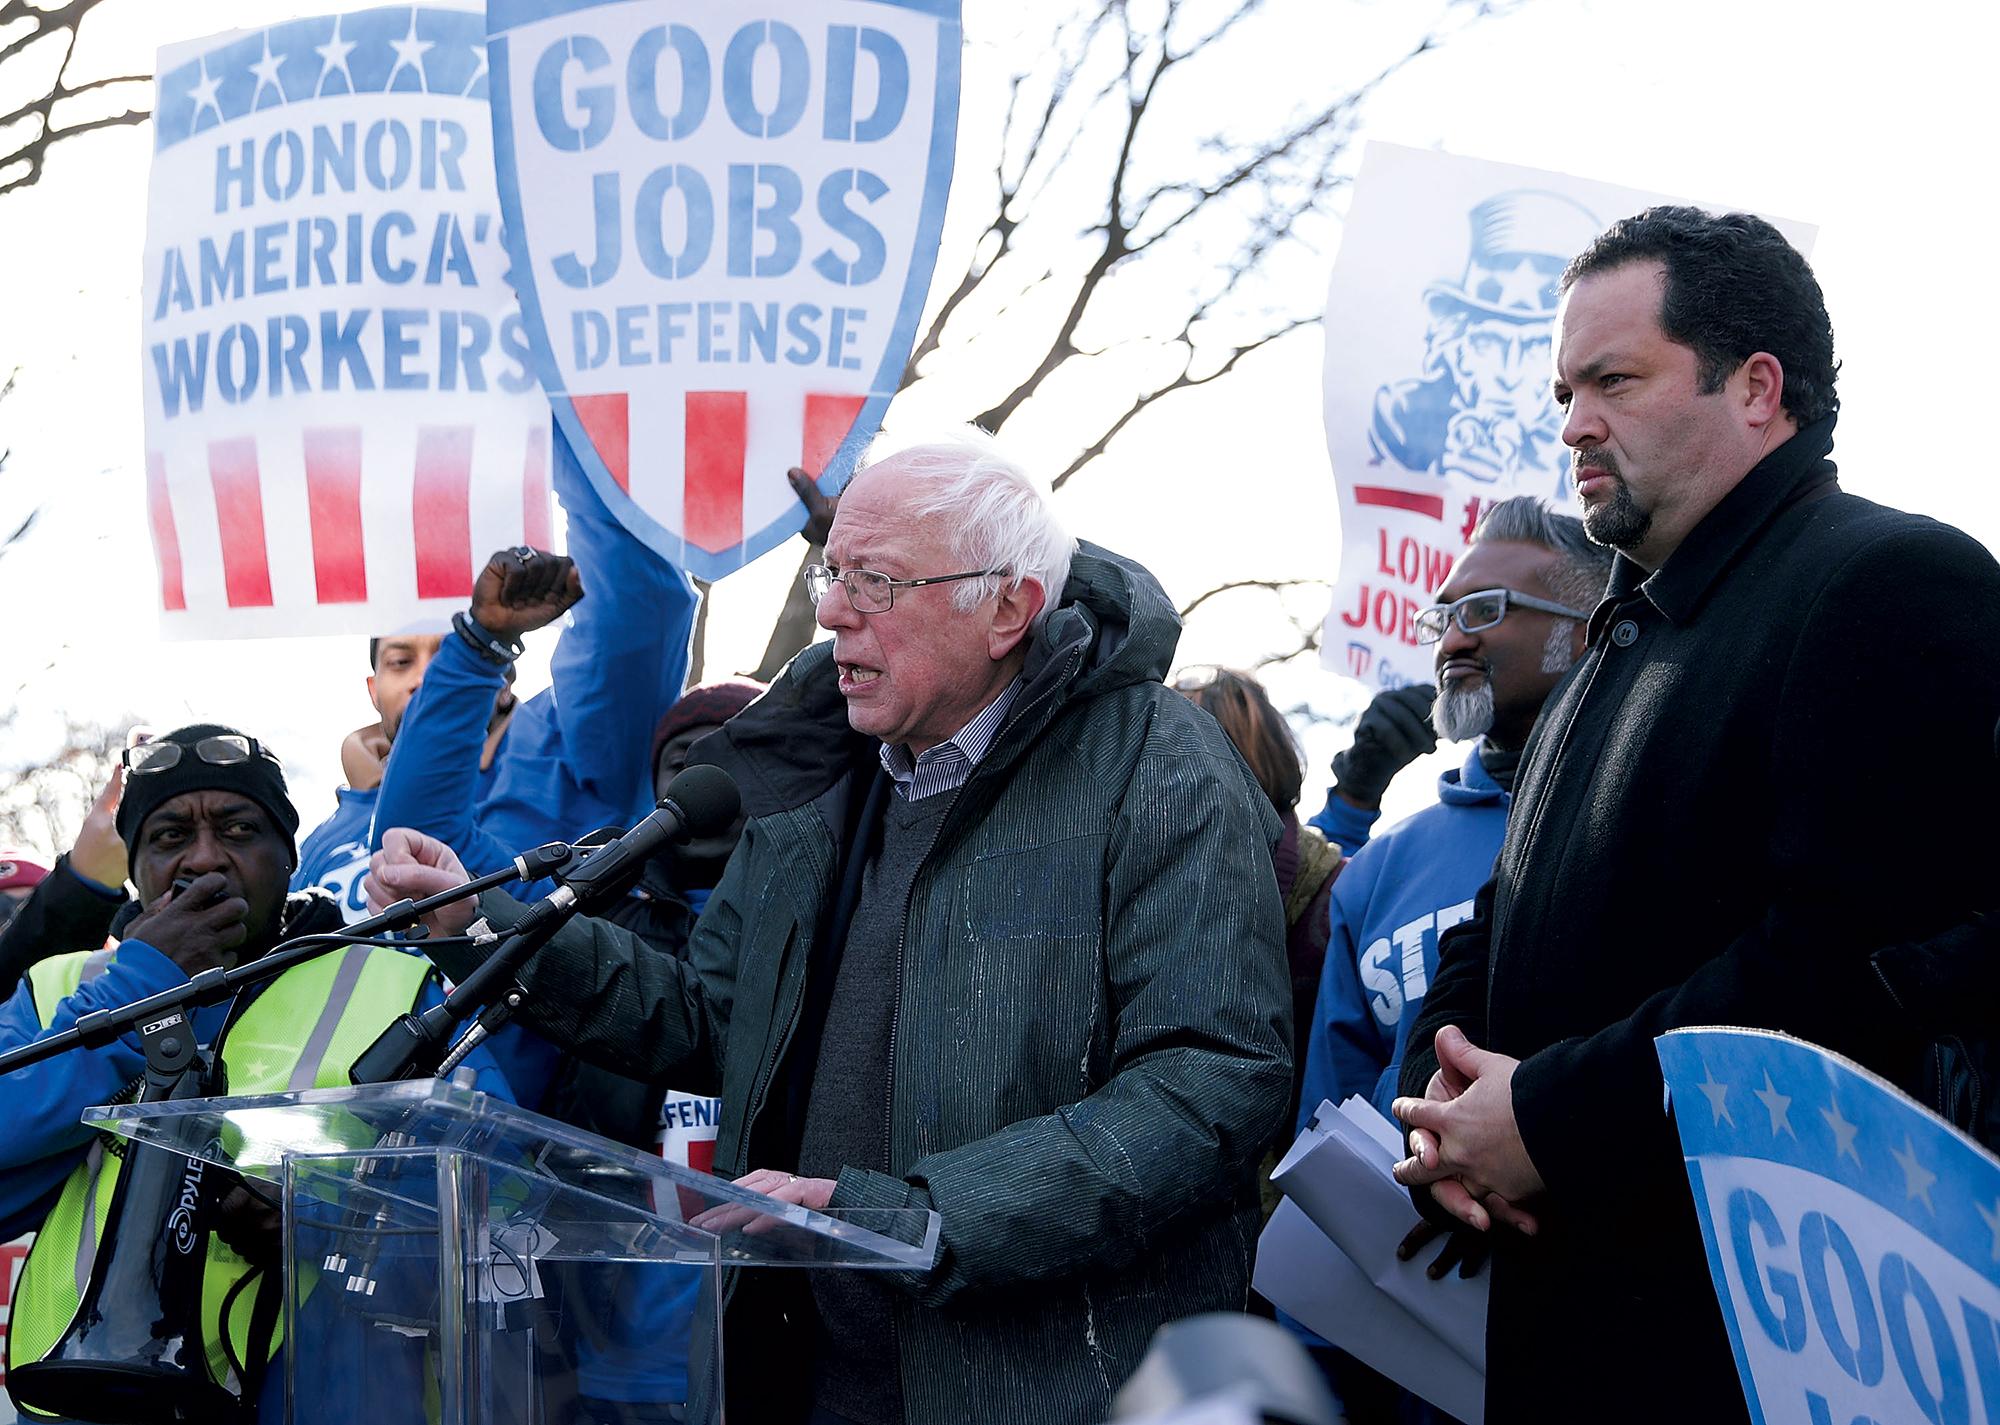 Vermont senator Bernie Sanders and Ben Jealous join forces during a protest on Capitol Hill in early 2017. Photograph by Alex Wong/Getty Images.